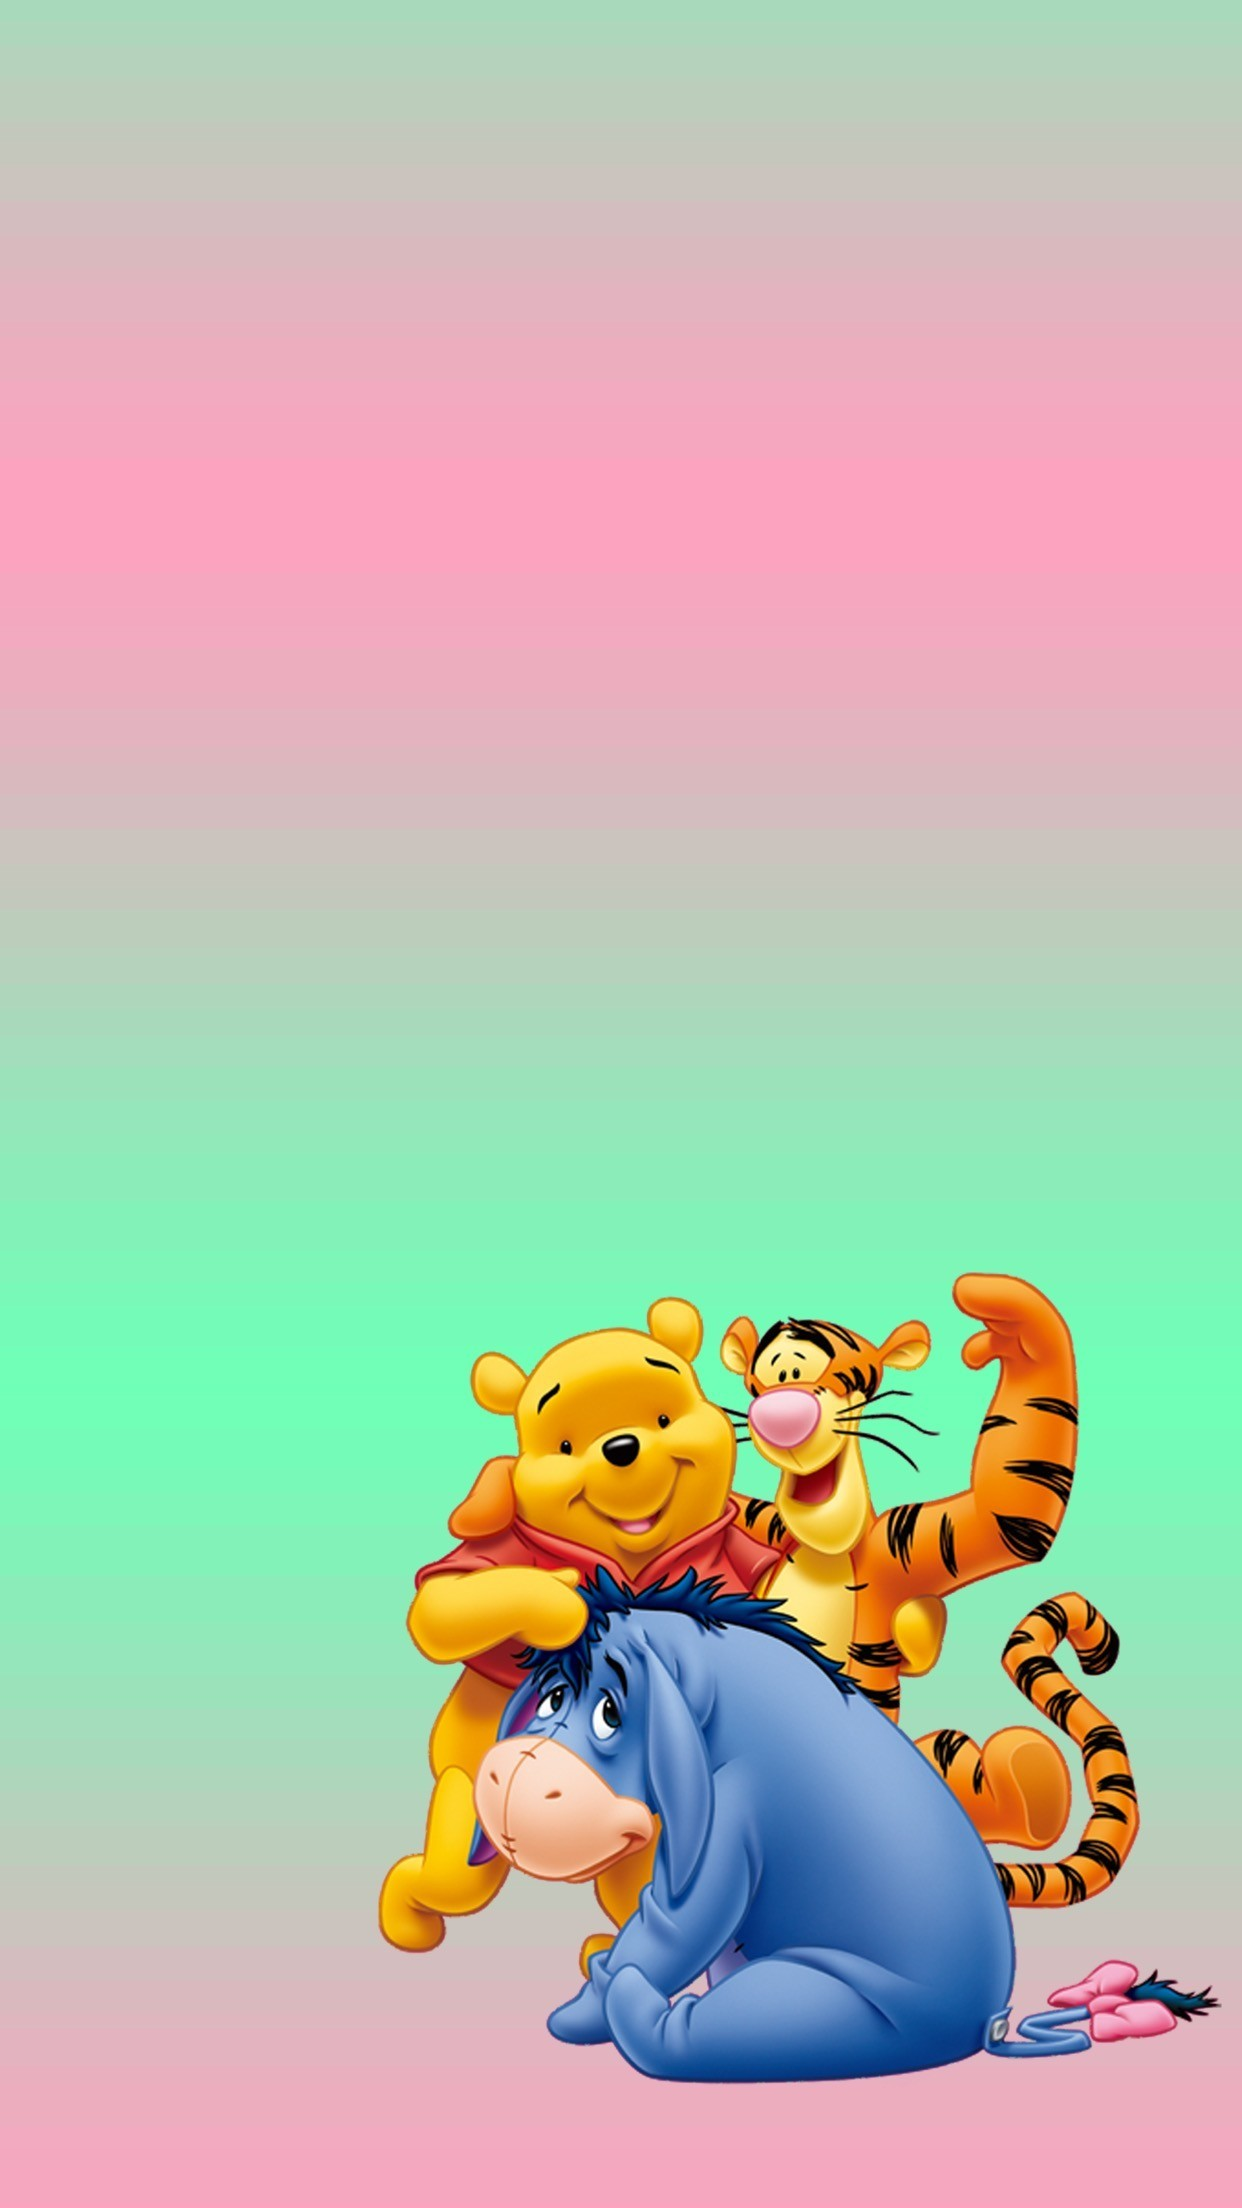 Winnie the pooh christmas wallpaper 46 images - Winnie the pooh and friends wallpaper ...